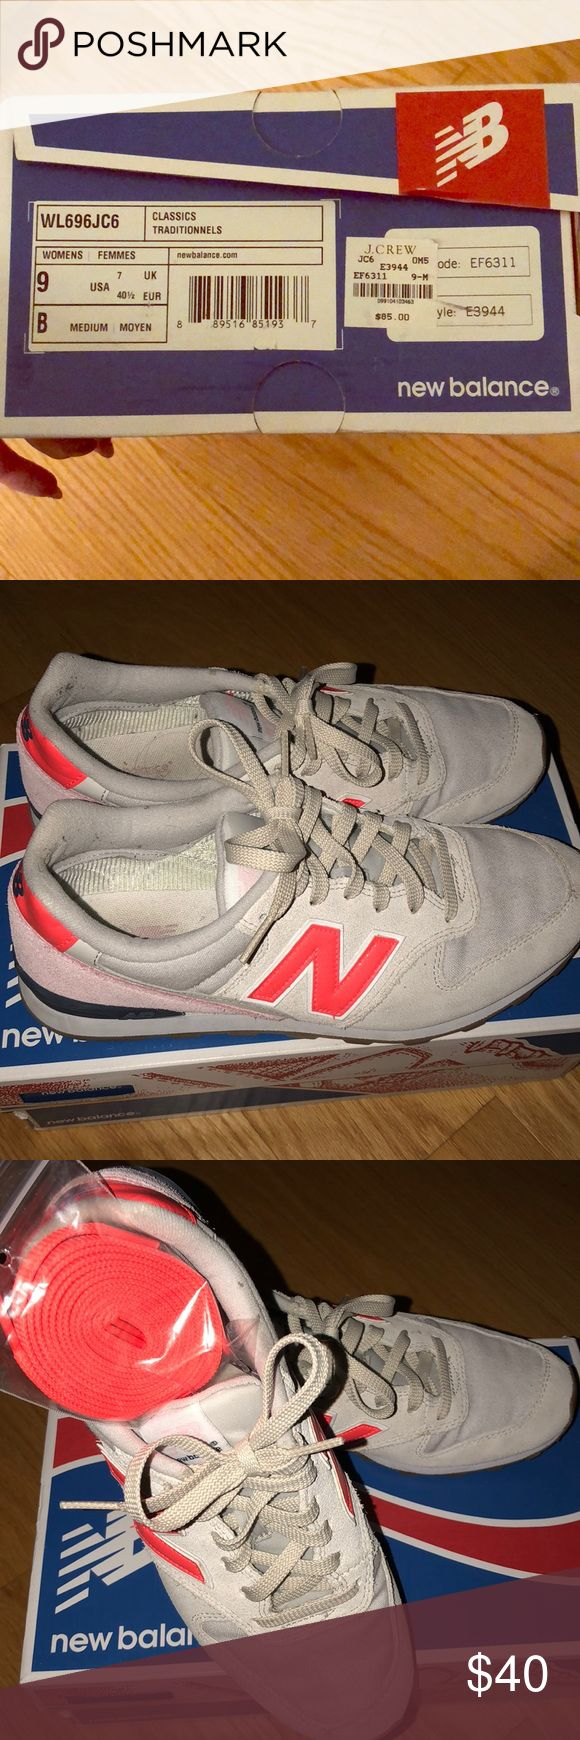 New Balance classics from J. CREW Size 9 New Balance shoes from J.CREW. Sold out when they were in the store. Only worn a handful of times. In great shape. Comfortable and cute! New Balance Shoes Sneakers